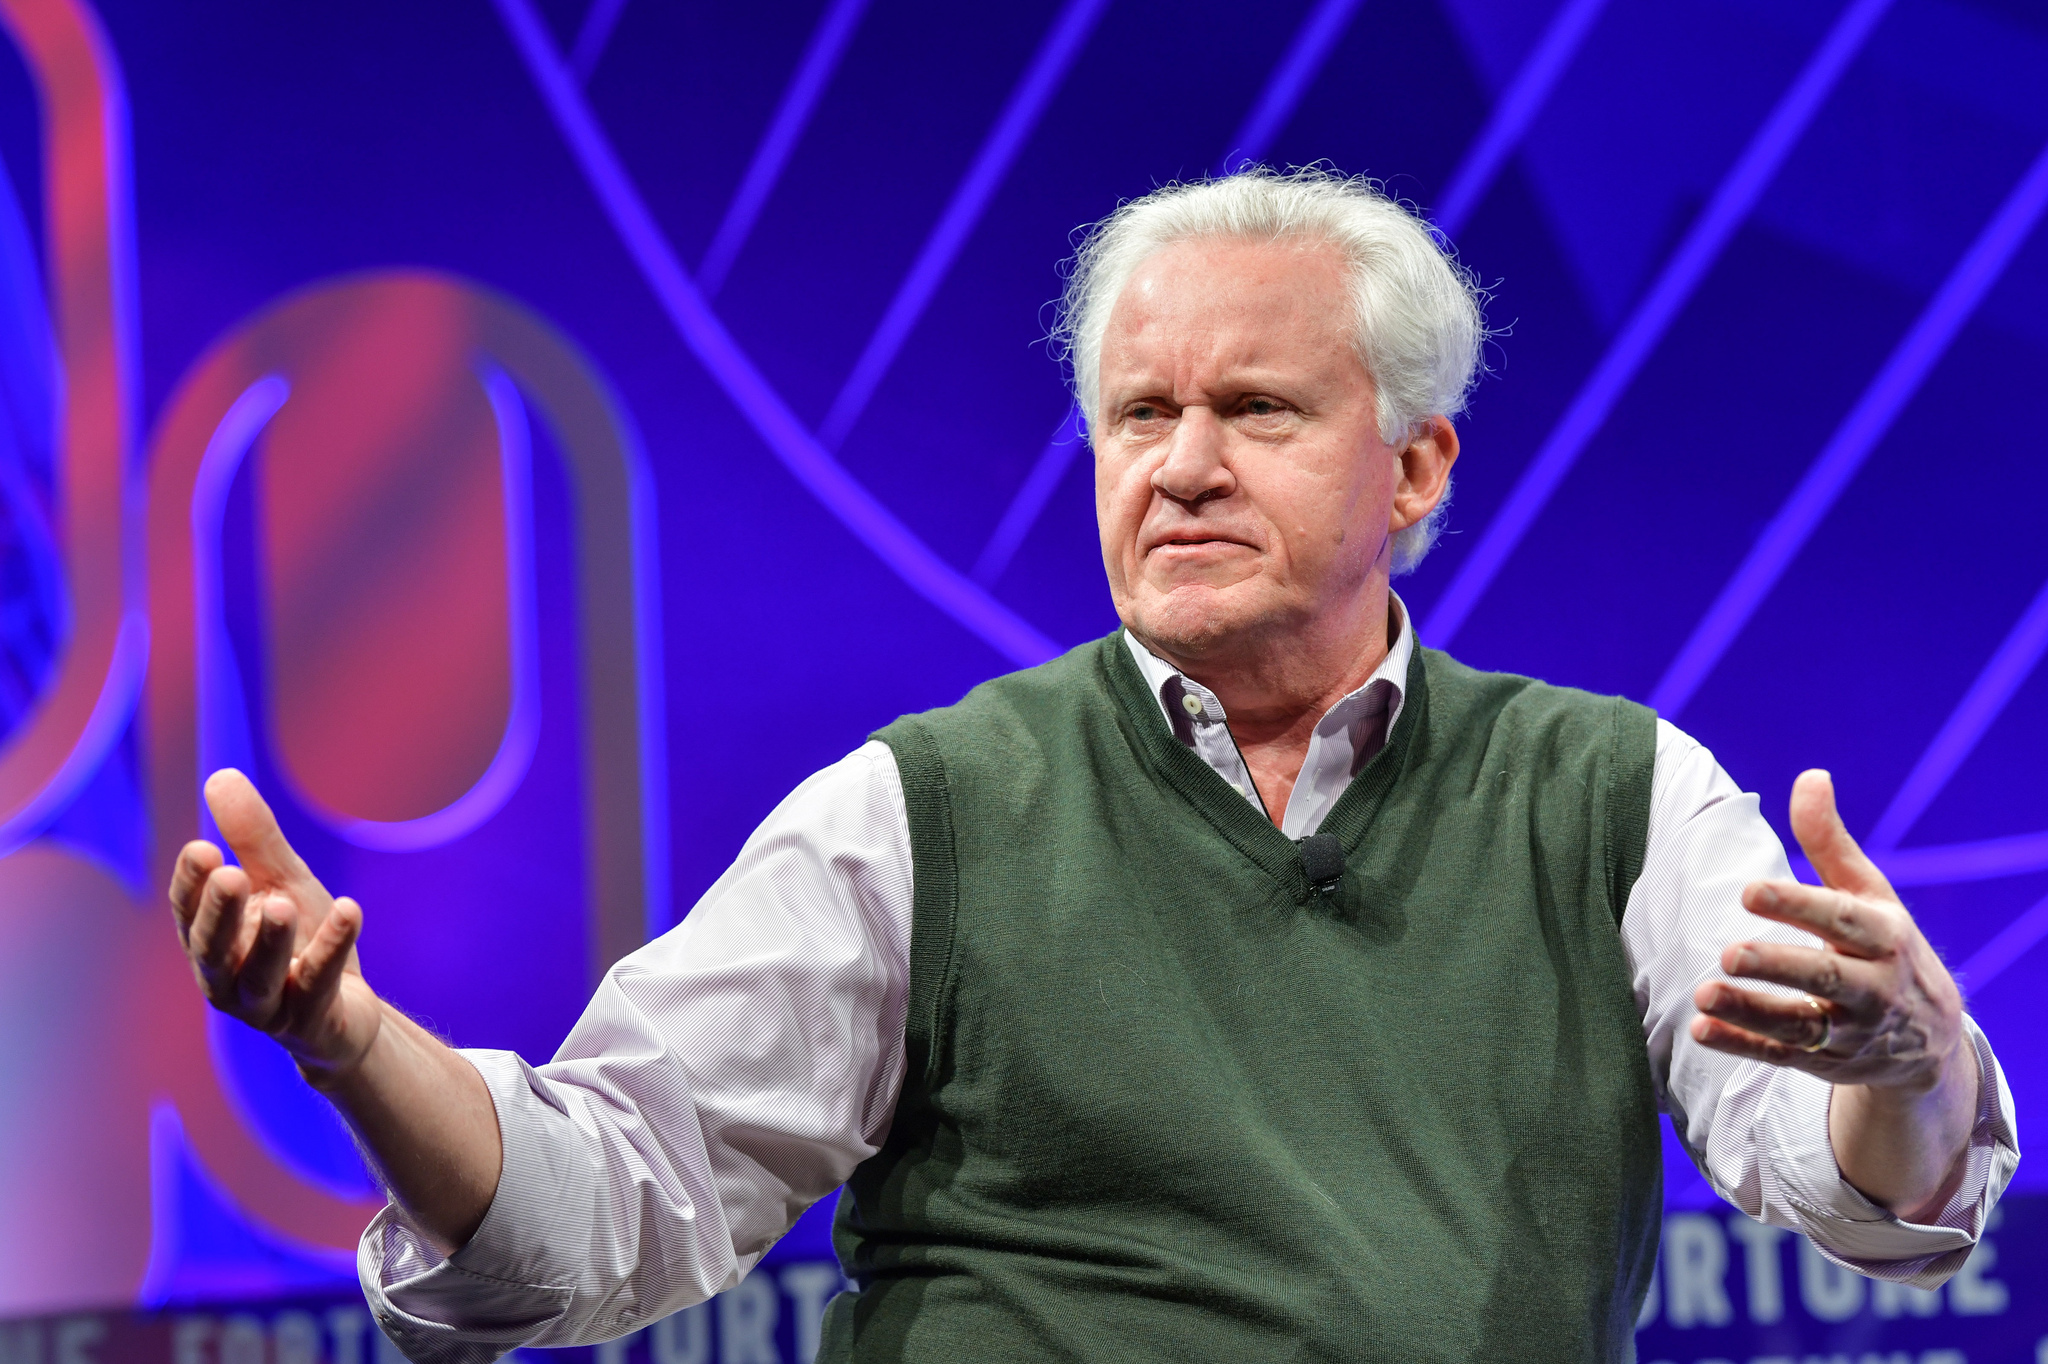 Former GE CEO Jeff Immelt speaking at the 2019 Fortune Brainstorm Health conference in San Diego.